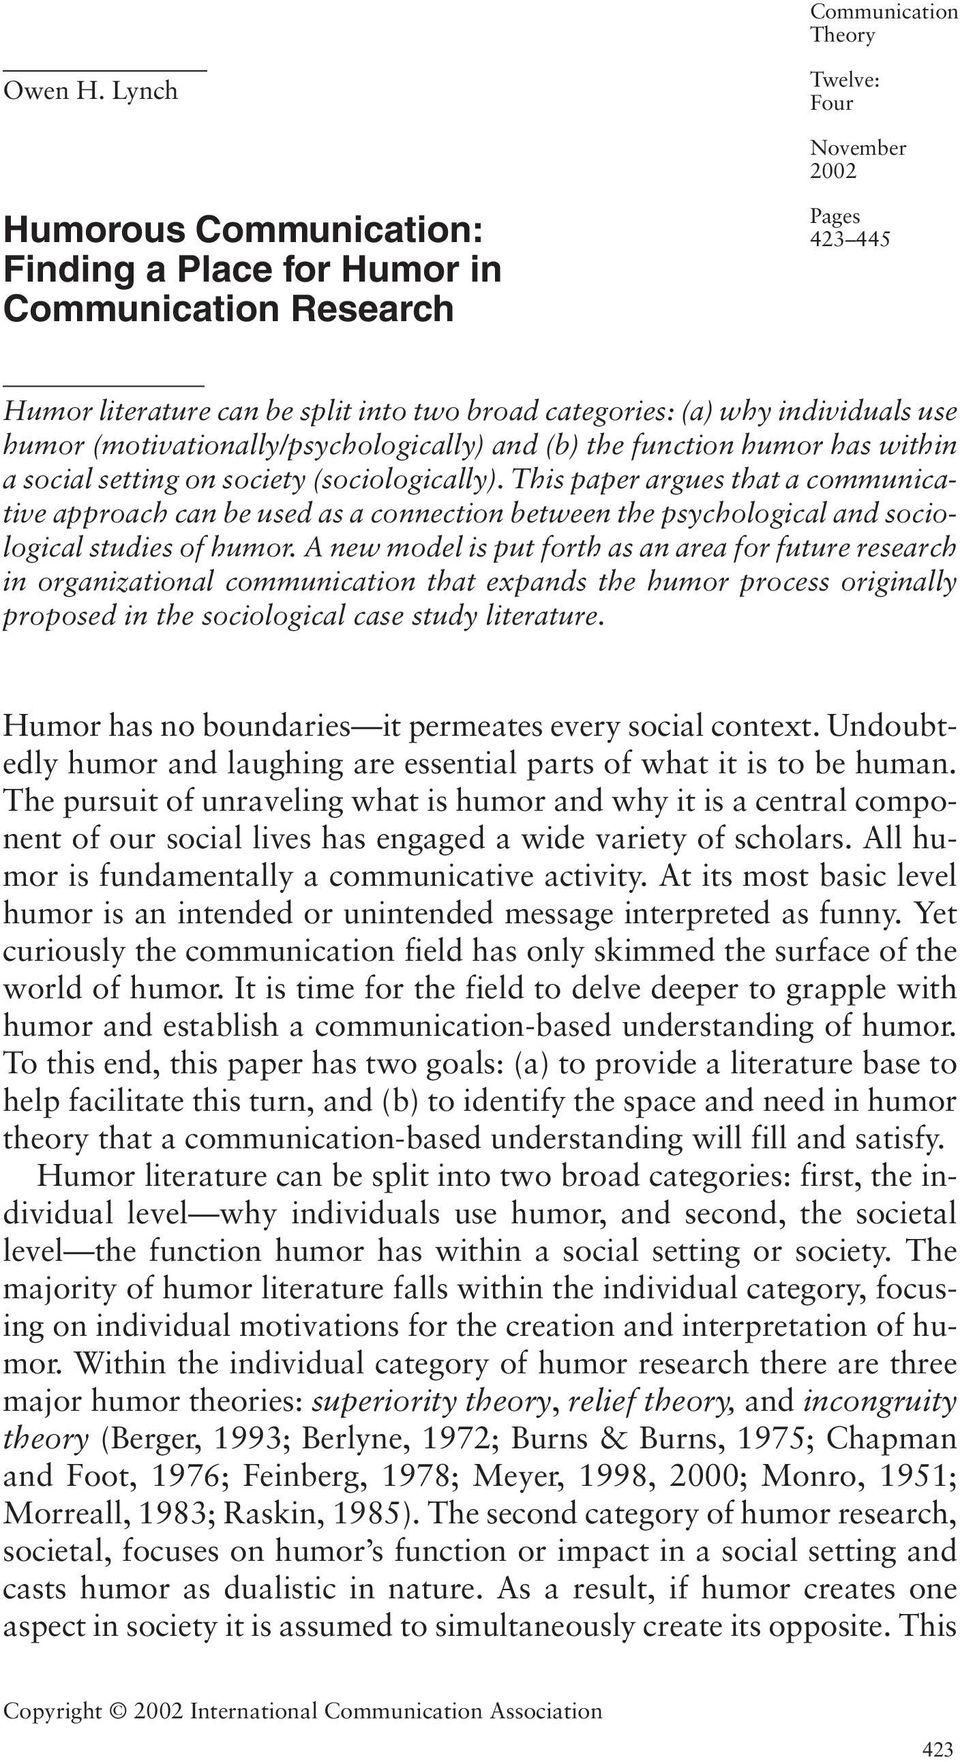 use humor (motivationally/psychologically) and (b) the function humor has within a social setting on society (sociologically).